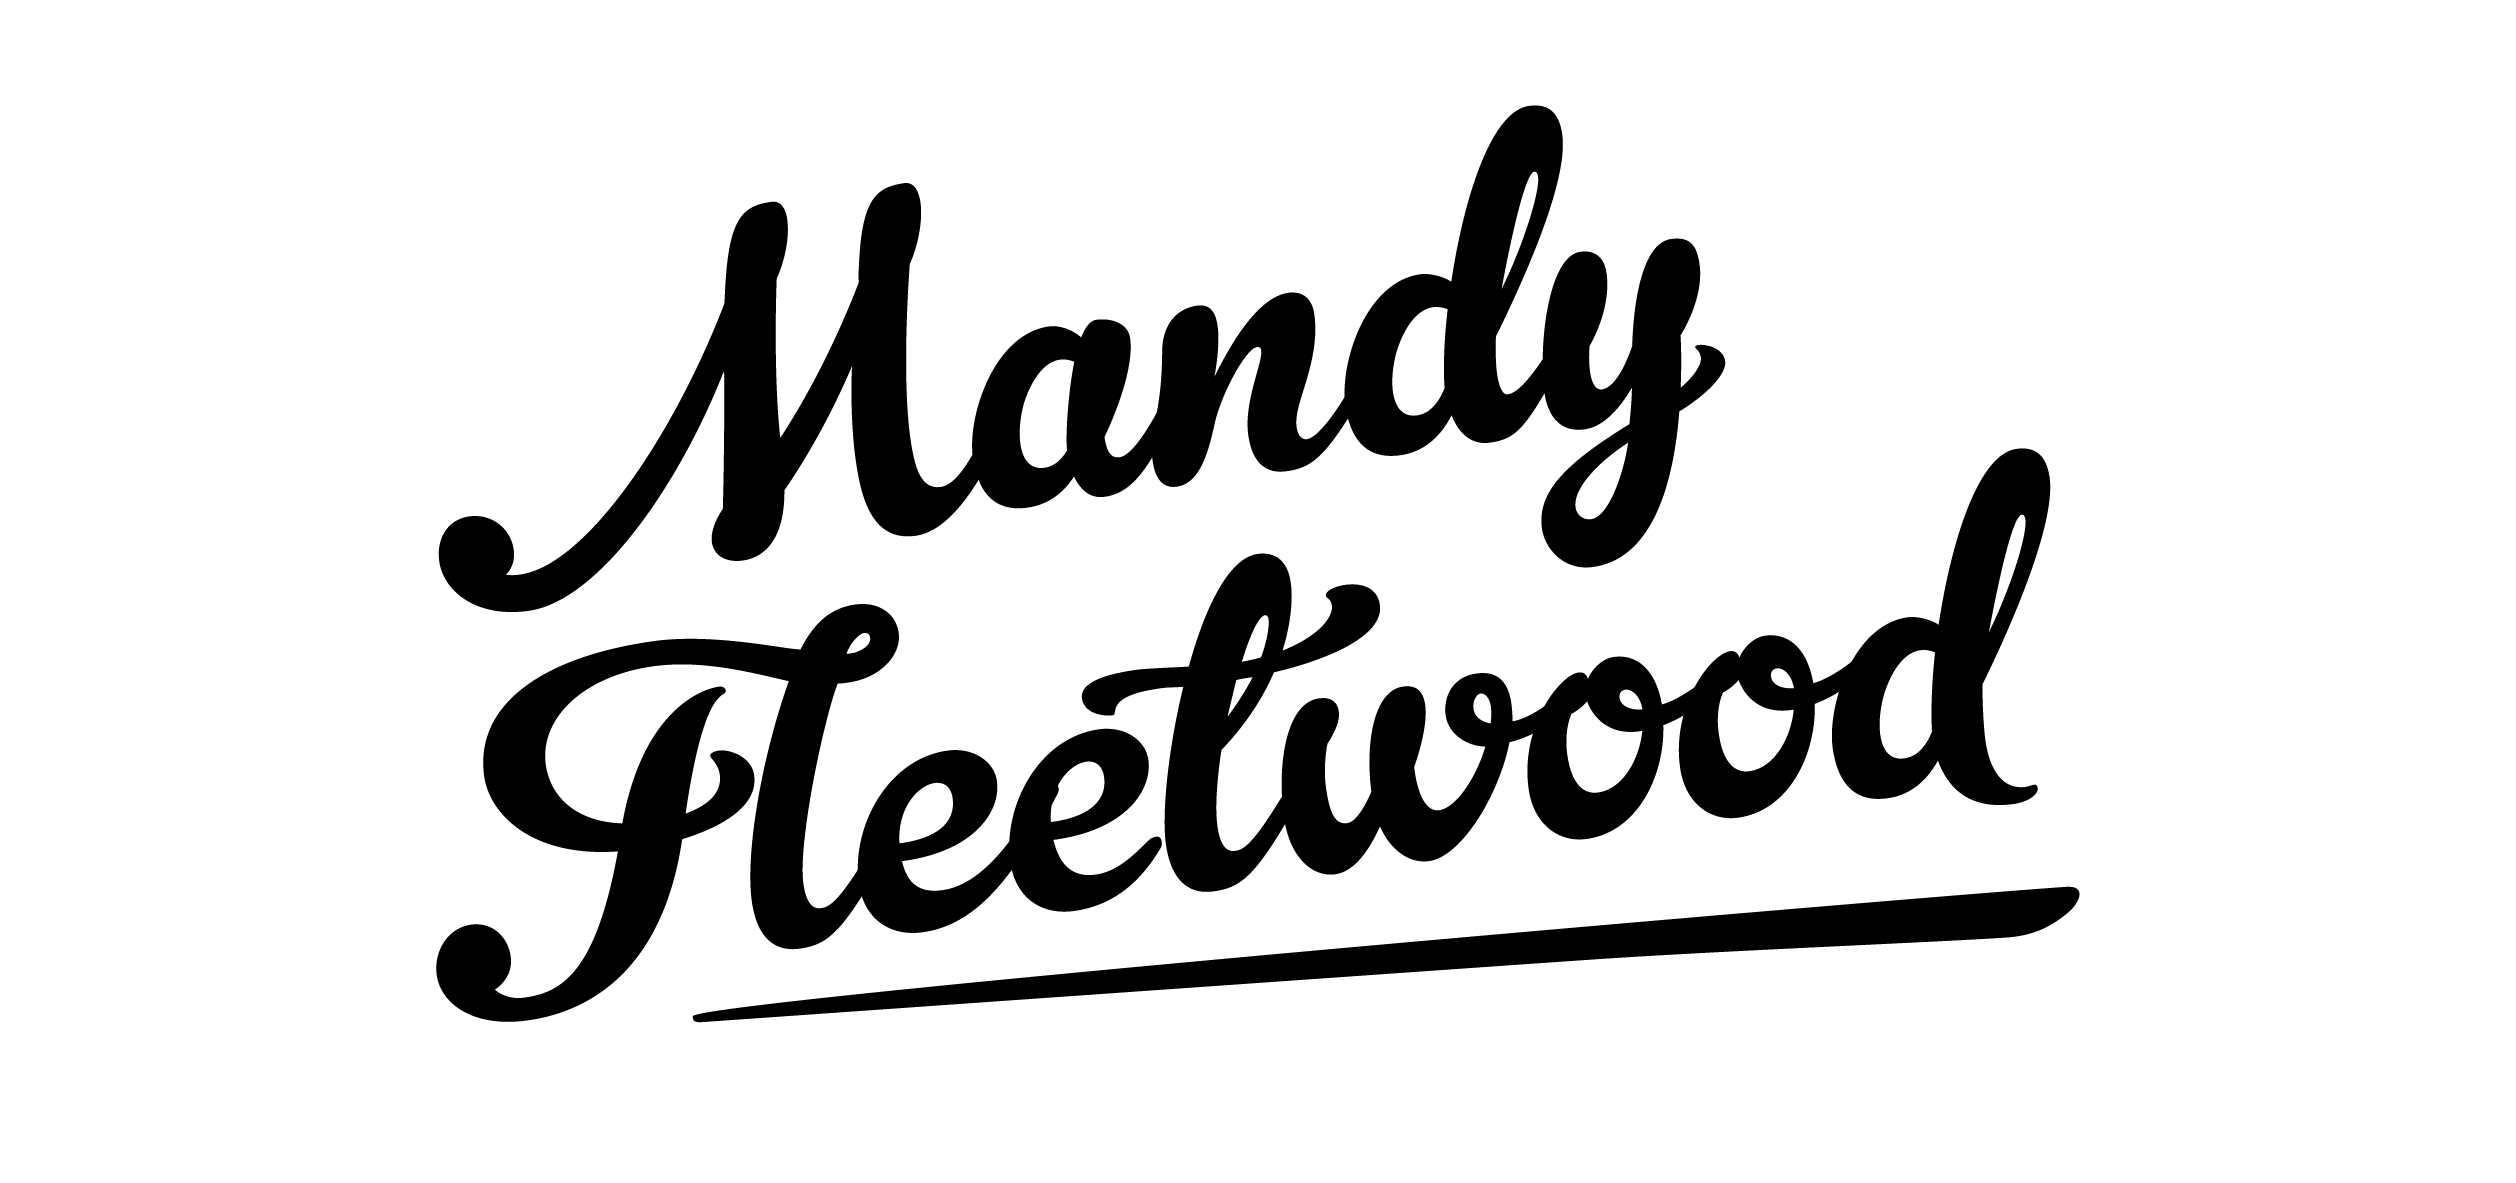 Mandy Fleetwood